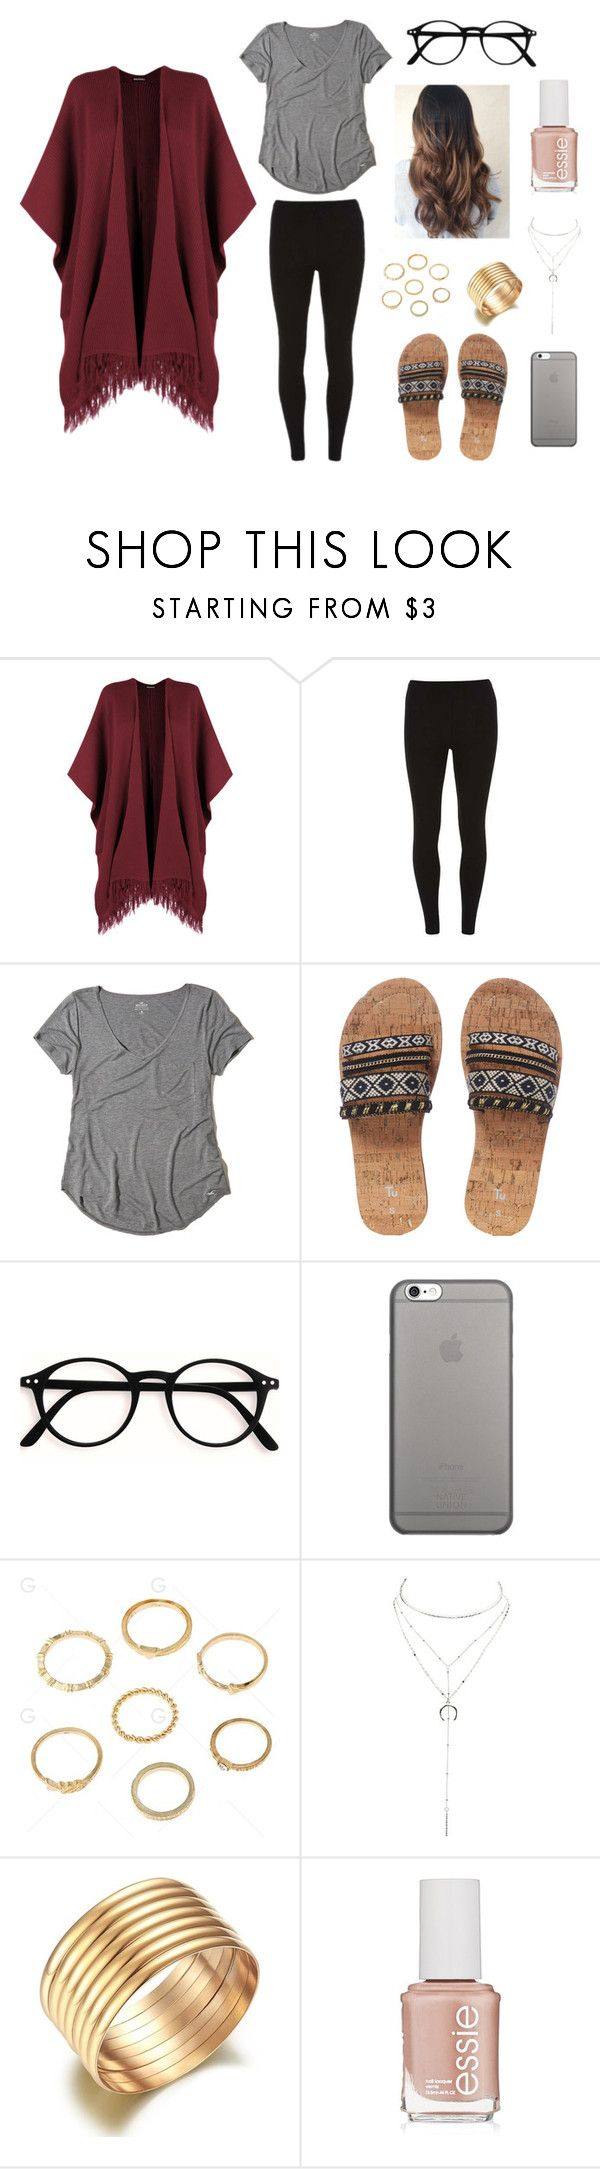 """""""Trendy Outfits"""" by coldplay-shirt on Polyvore featuring WearAll, Dorothy Perkins, Hollister Co., Native Union, Charlotte Russe and Essie"""